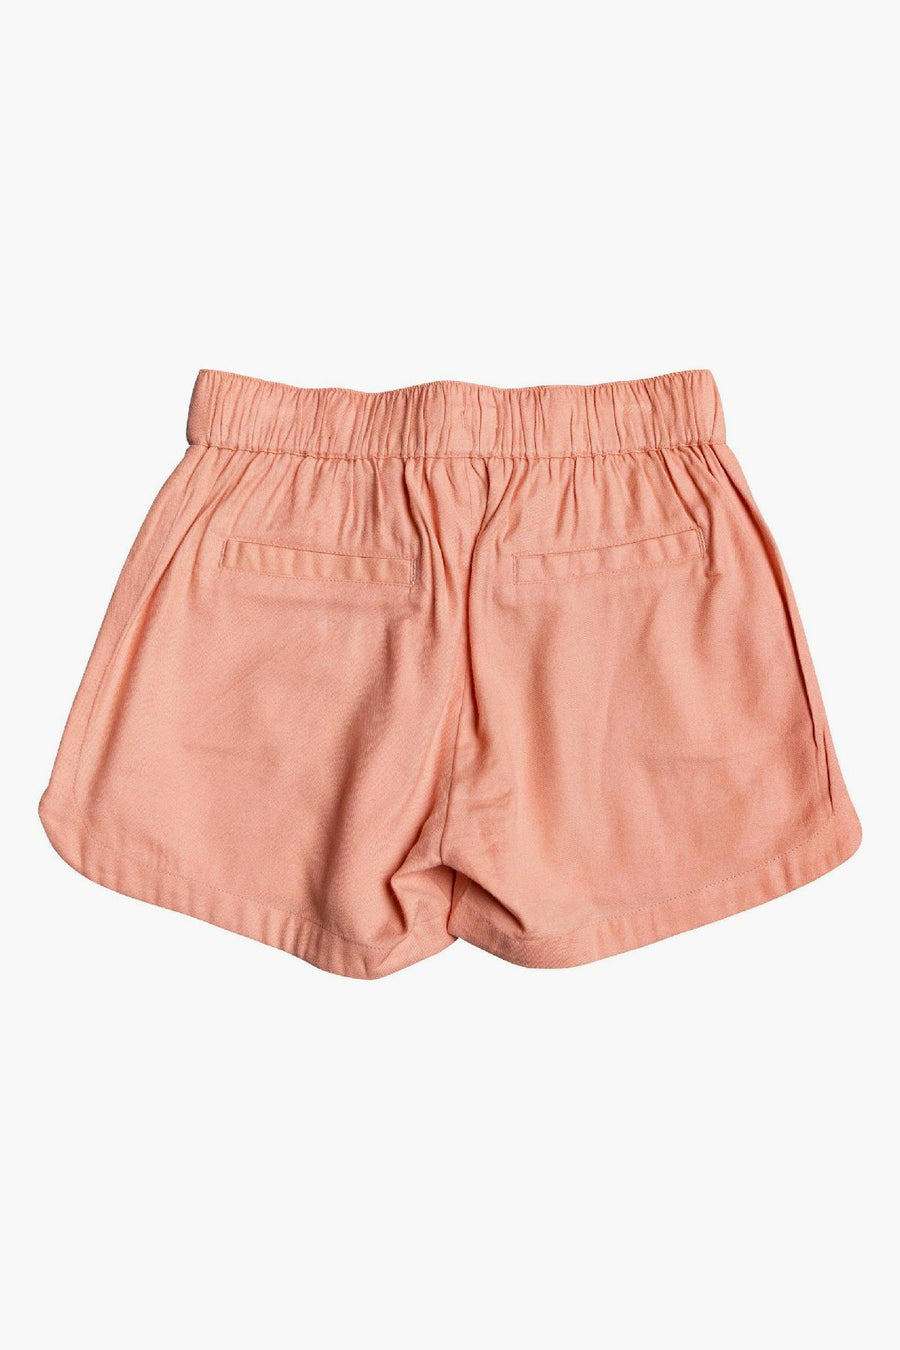 Roxy Una Mattina Girls Shorts - Terracotta